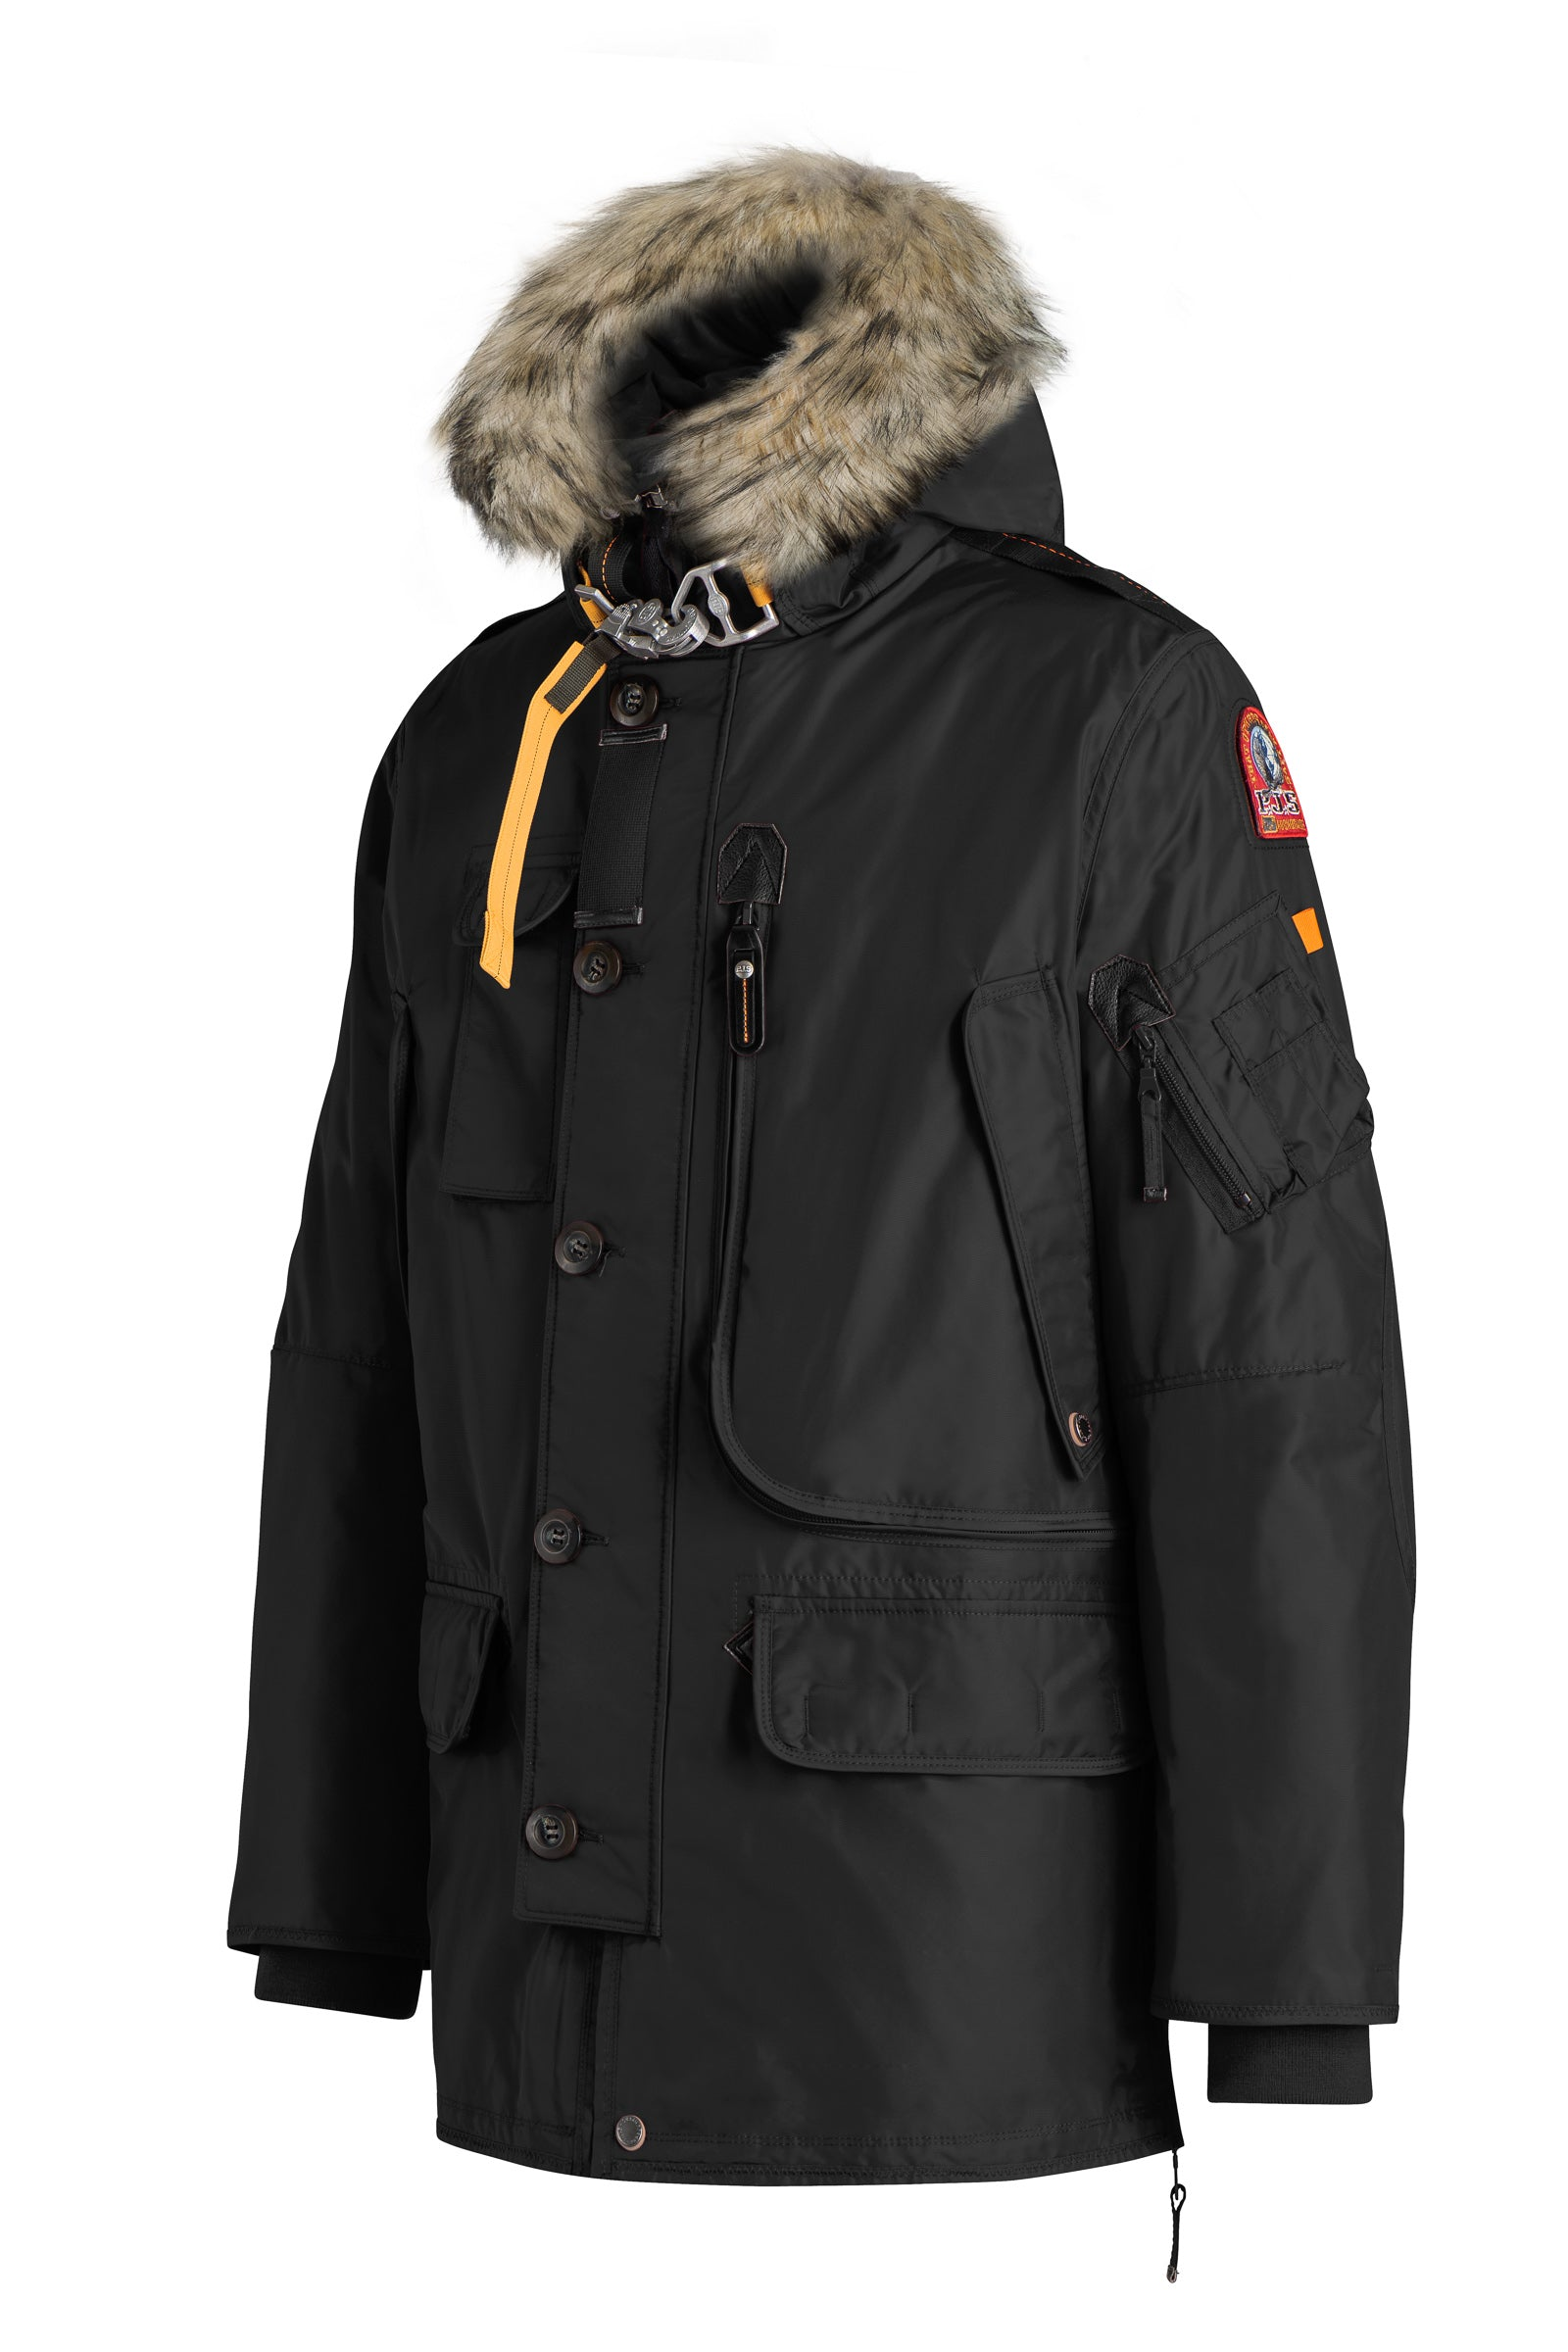 7bfd06c0c3 ... hot parajumpers kodiak parka in black 61578 0fdb1 best parajumpers  history ...